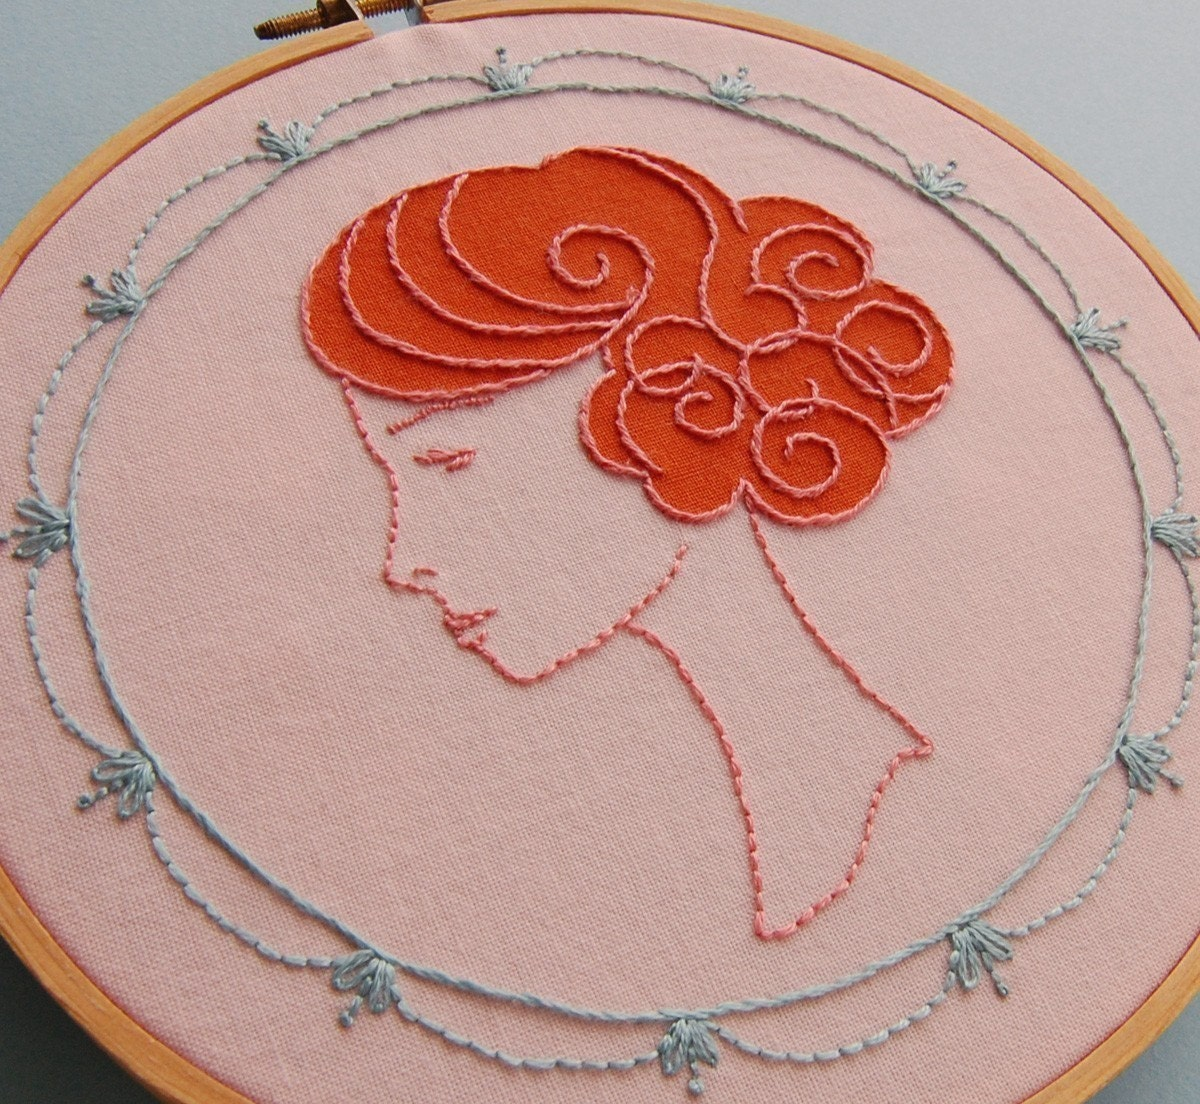 Embroidery Patterns, WIG WONDERFUL Hand Embroidery Patterns - SeptemberHouse